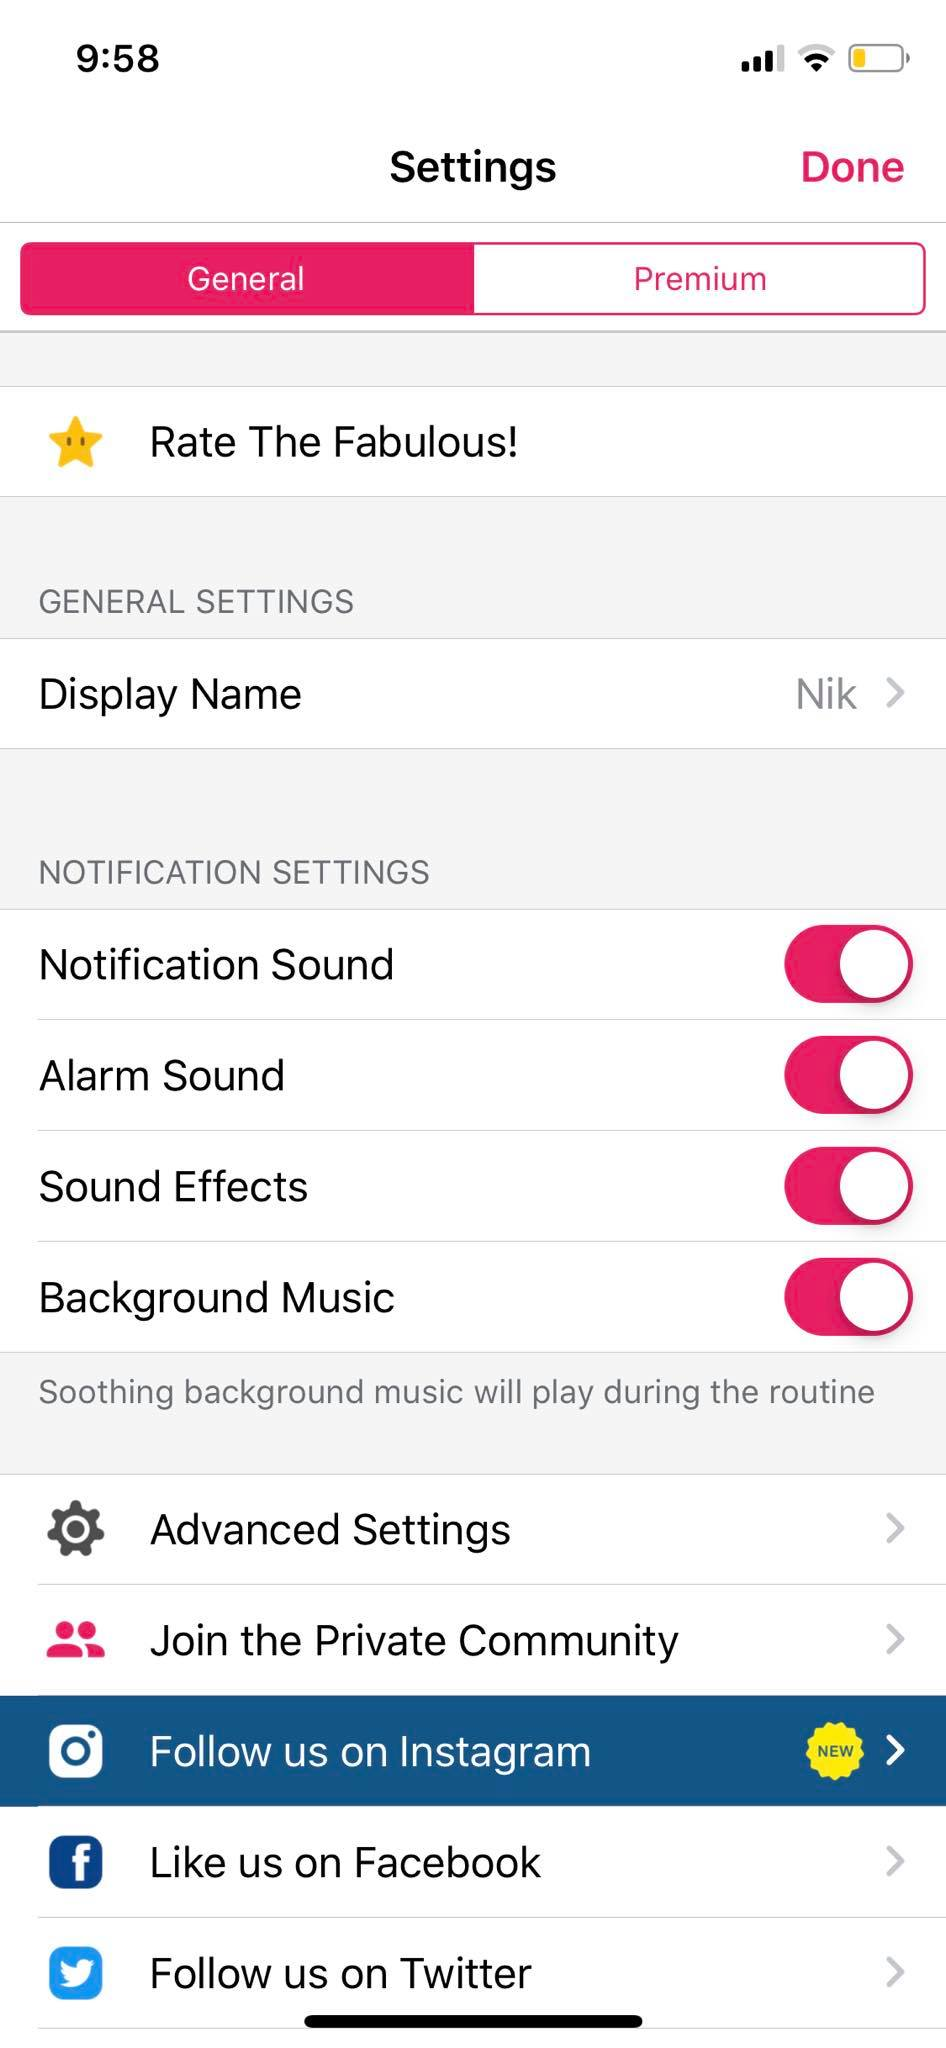 Settings on iOS by Fabulous from UIGarage